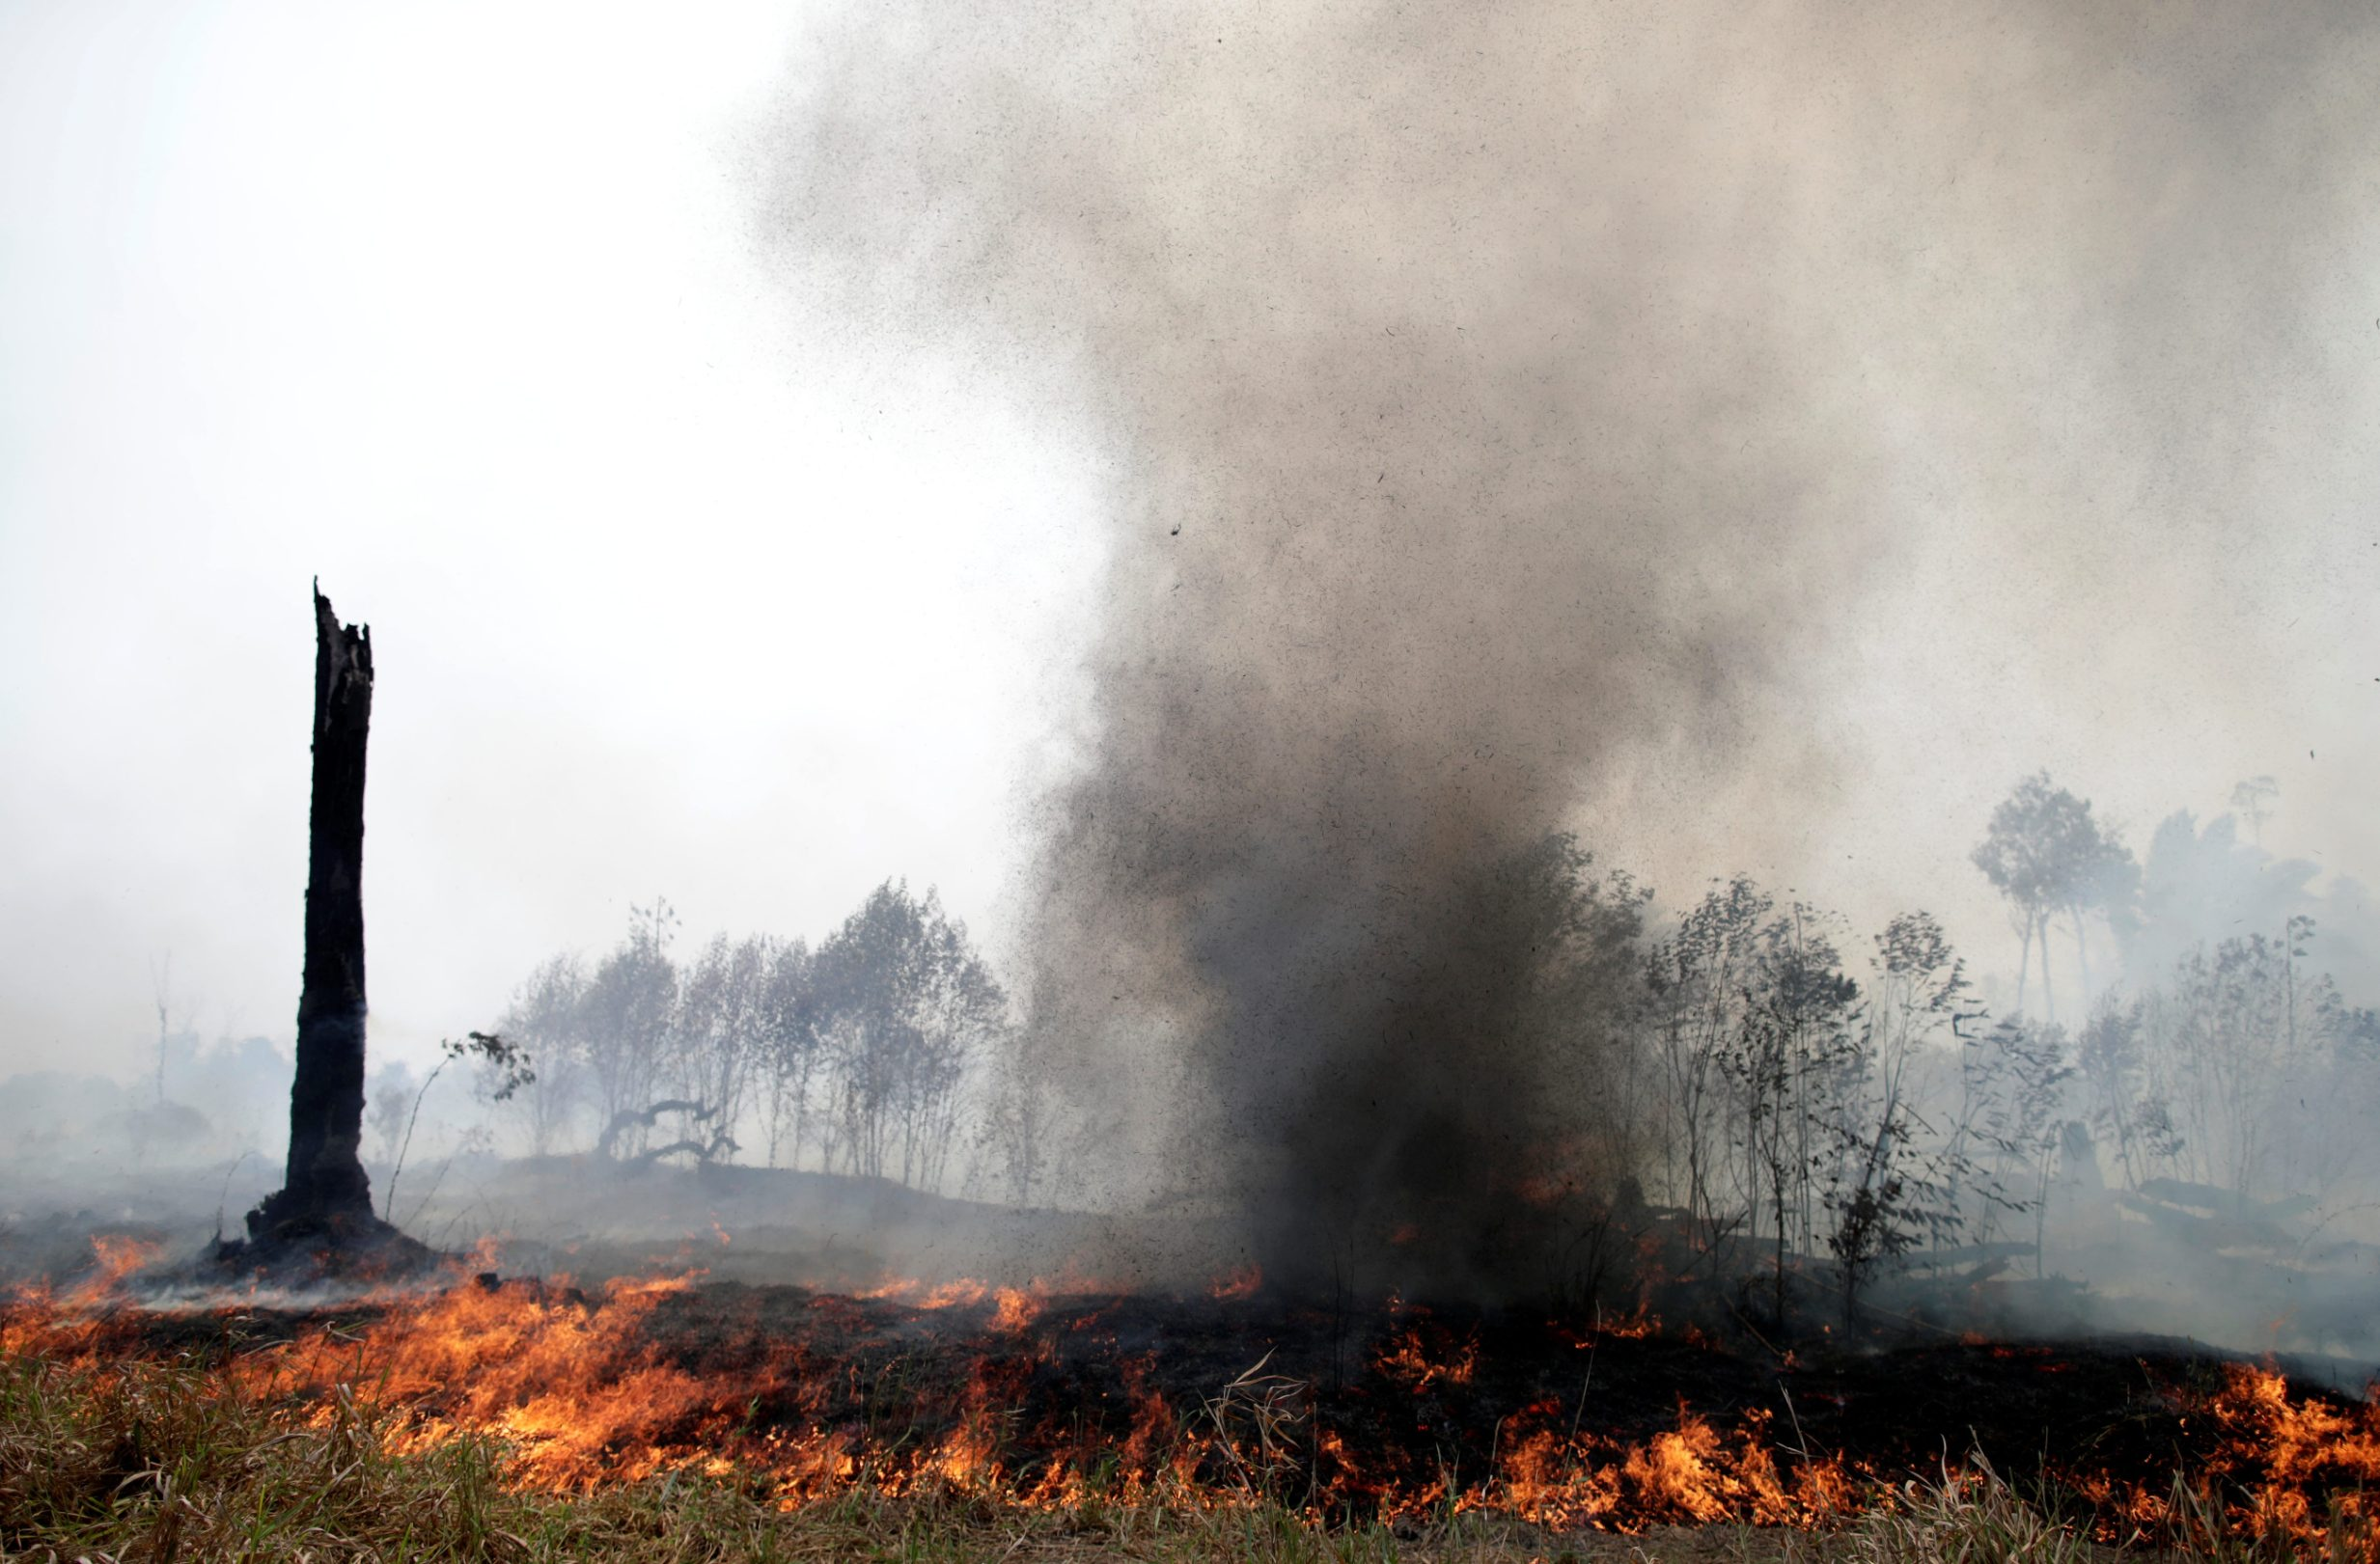 2019-08-24T194322Z_1078212356_RC130FFBEF50_RTRMADP_3_BRAZIL-ENVIRONMENT-WILDFIRES